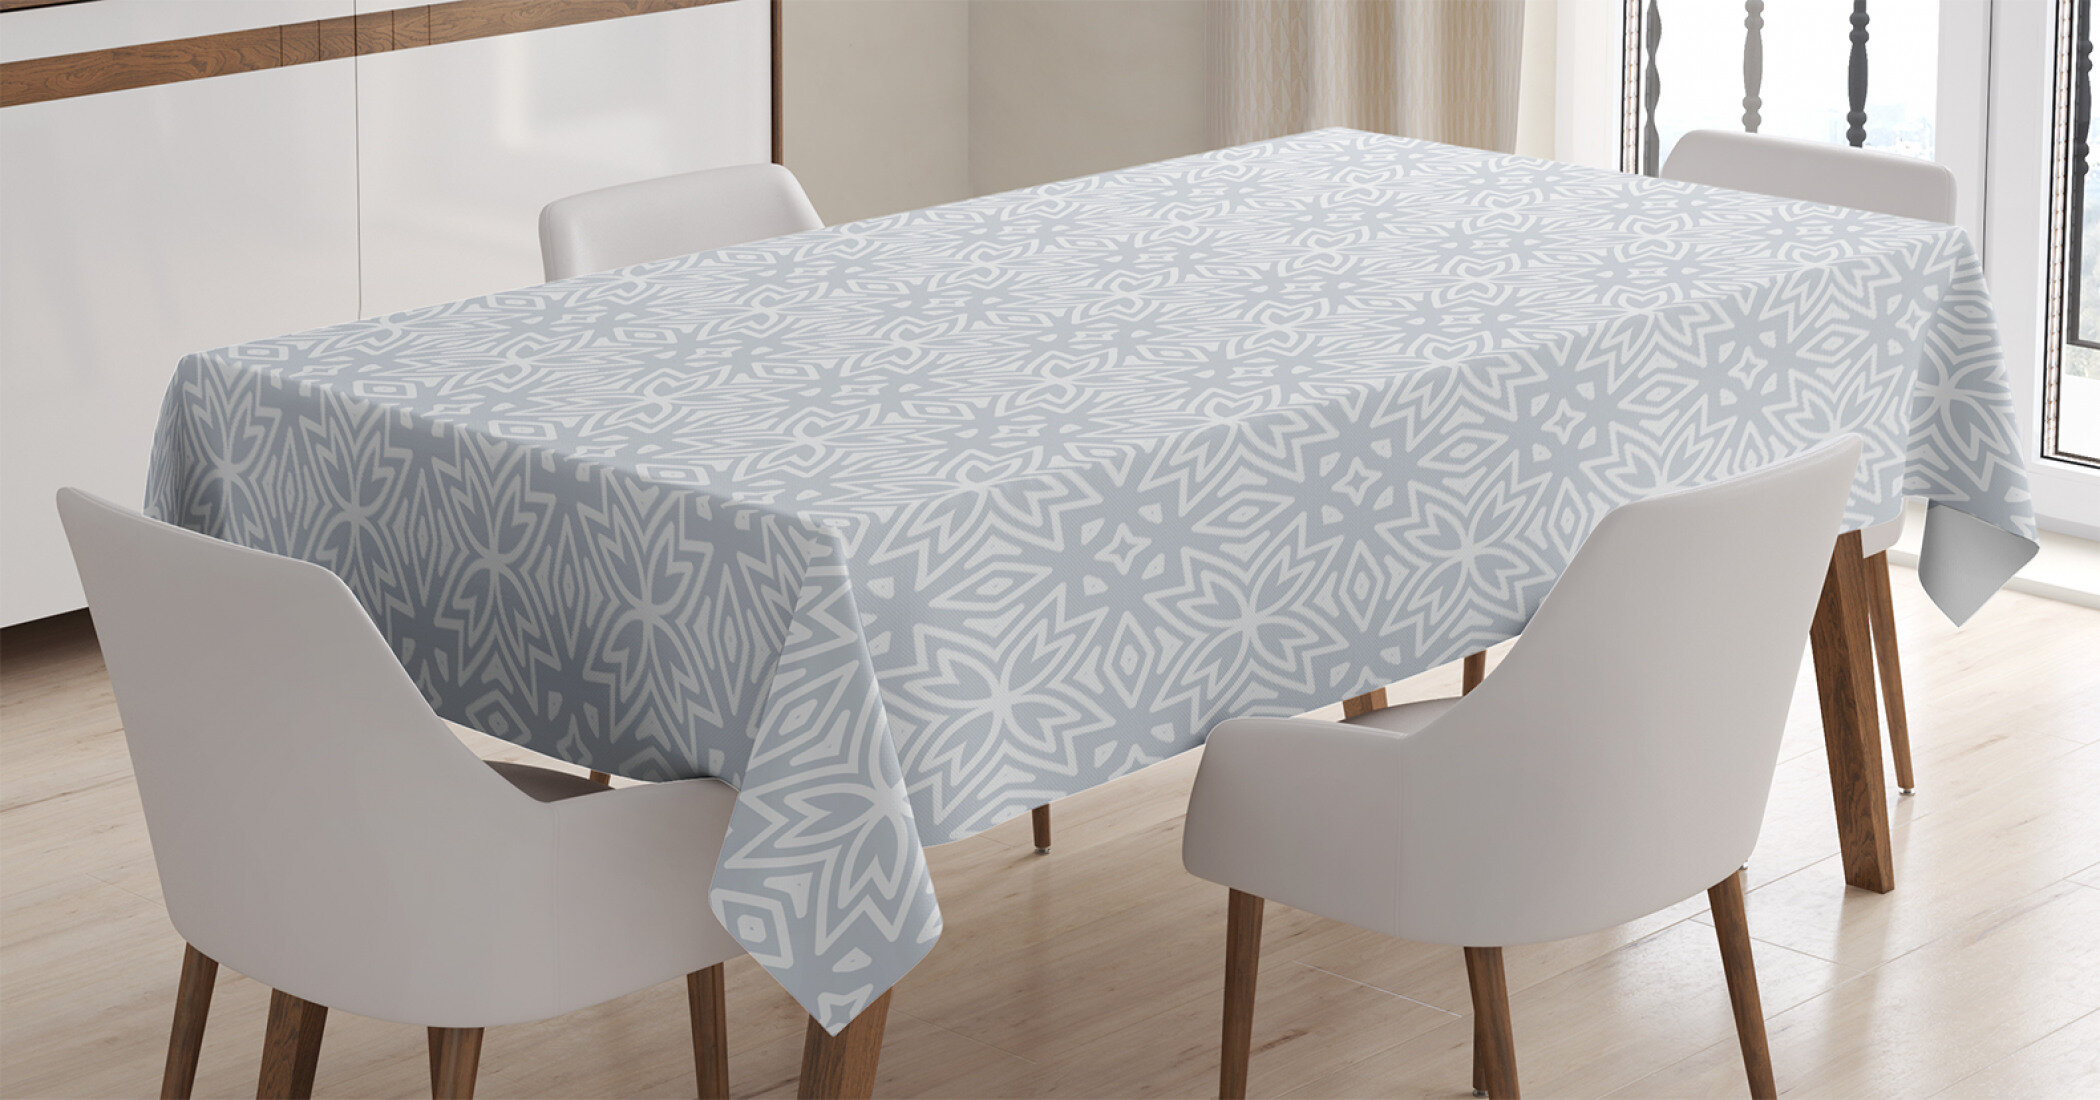 Picture of: East Urban Home Ambesonne Celtic Tablecloth Celtic Floral And Geometric Properties Old In New Design Rectangular Table Cover For Dining Room Kitchen Decor 60 X 90 Grey White Wayfair